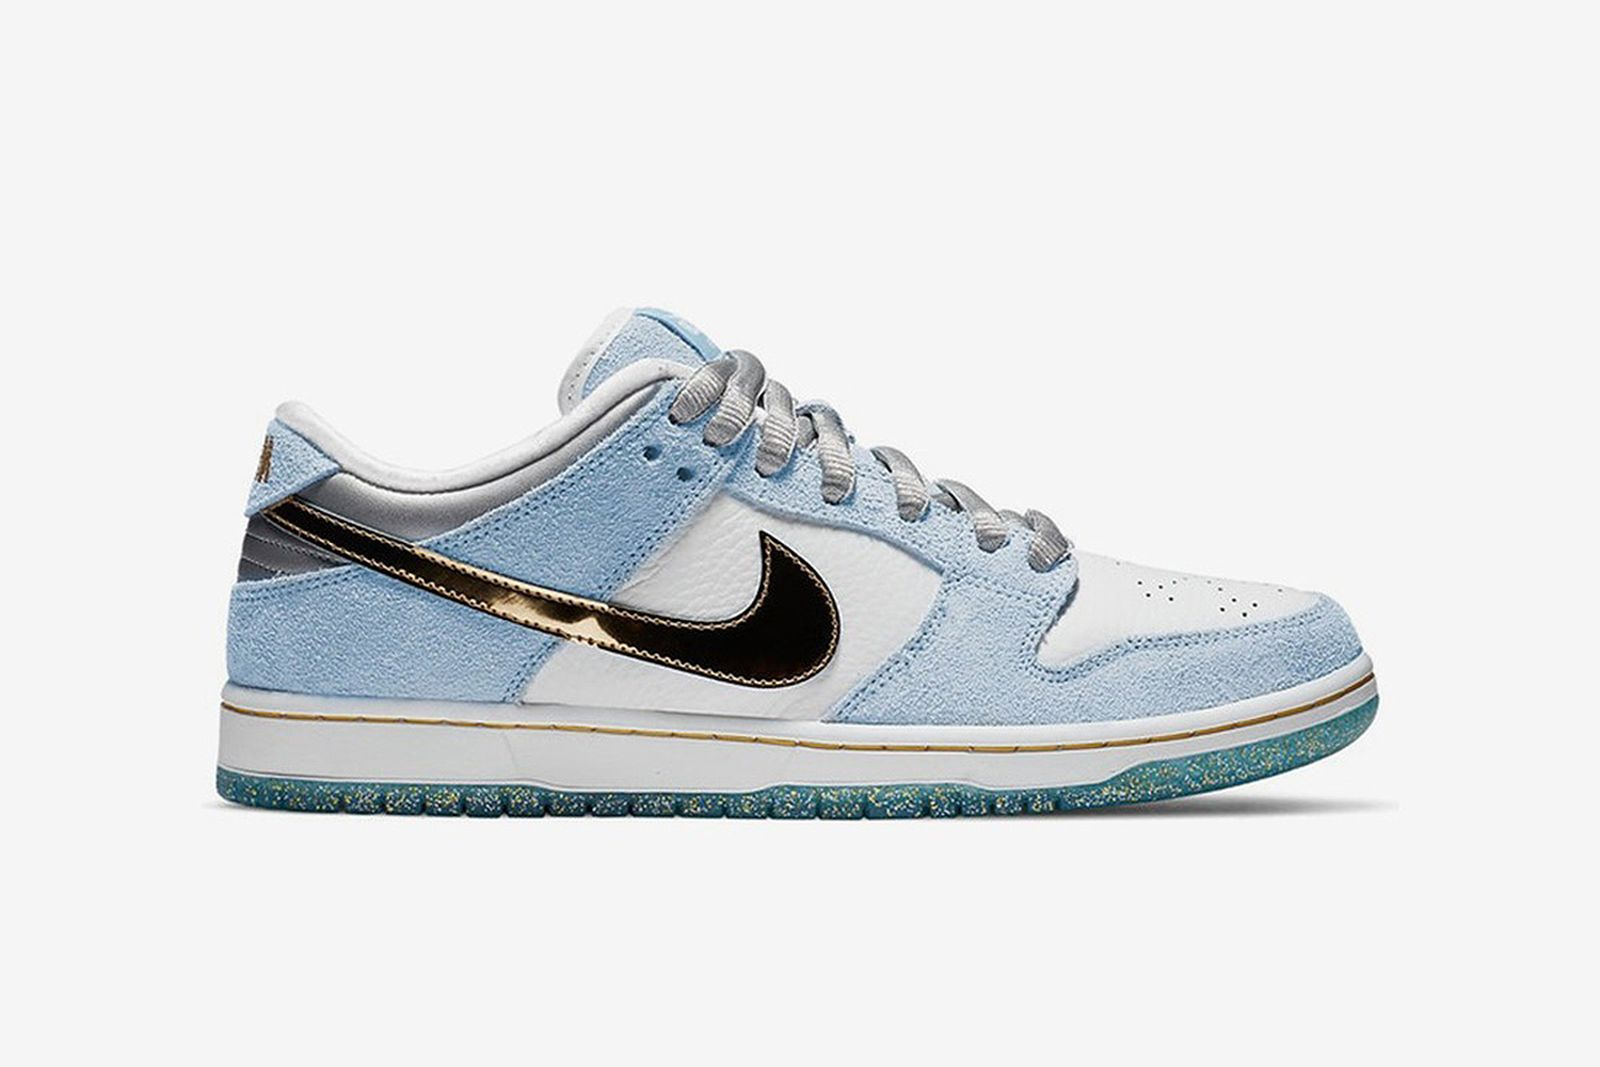 nike x sean cliver dunk holiday special